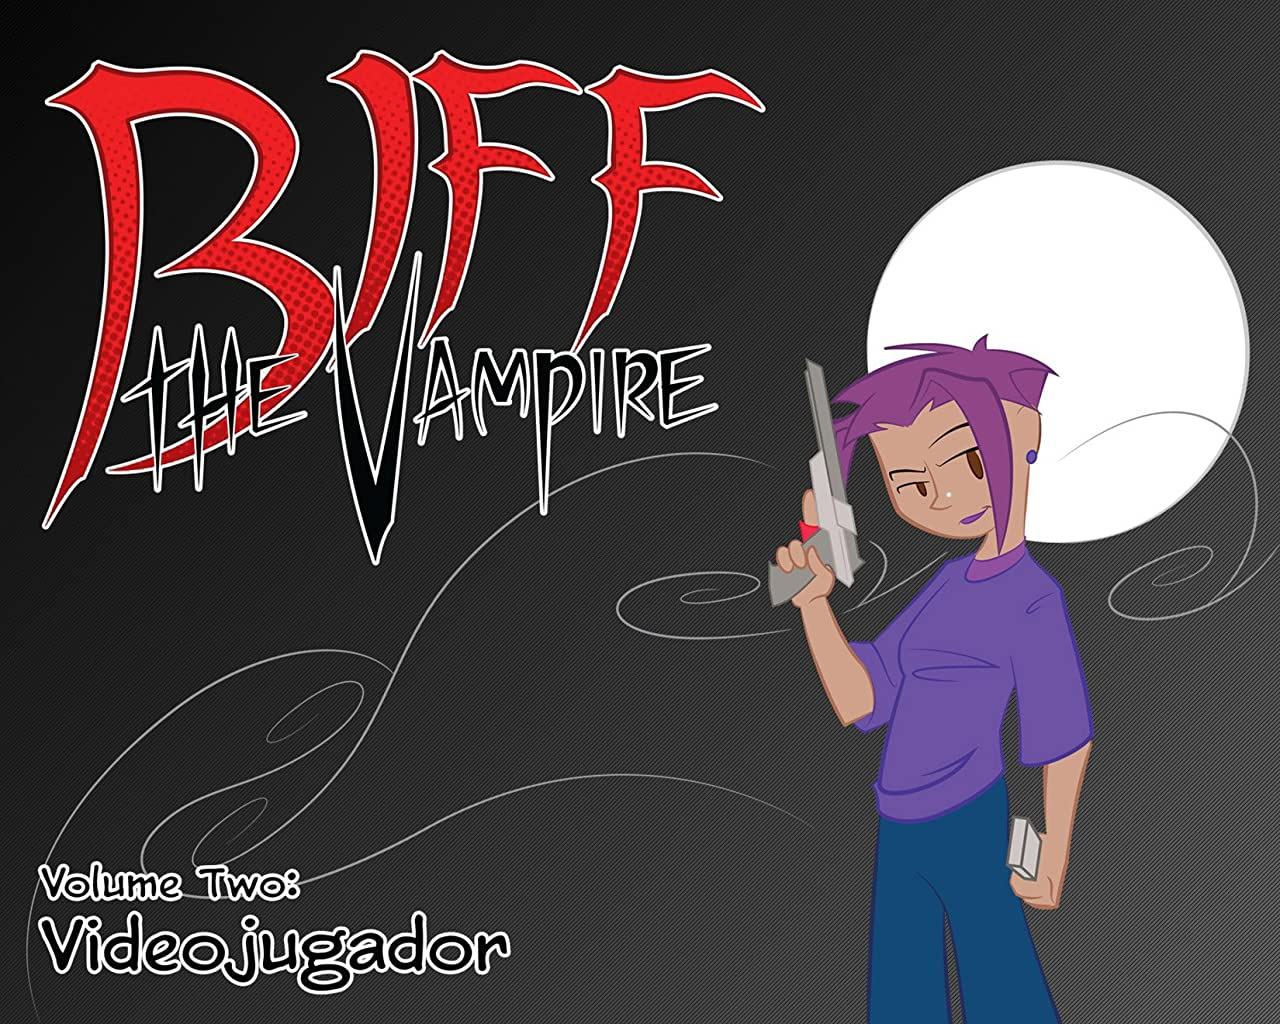 Biff the Vampire Vol. 2: Videojugador